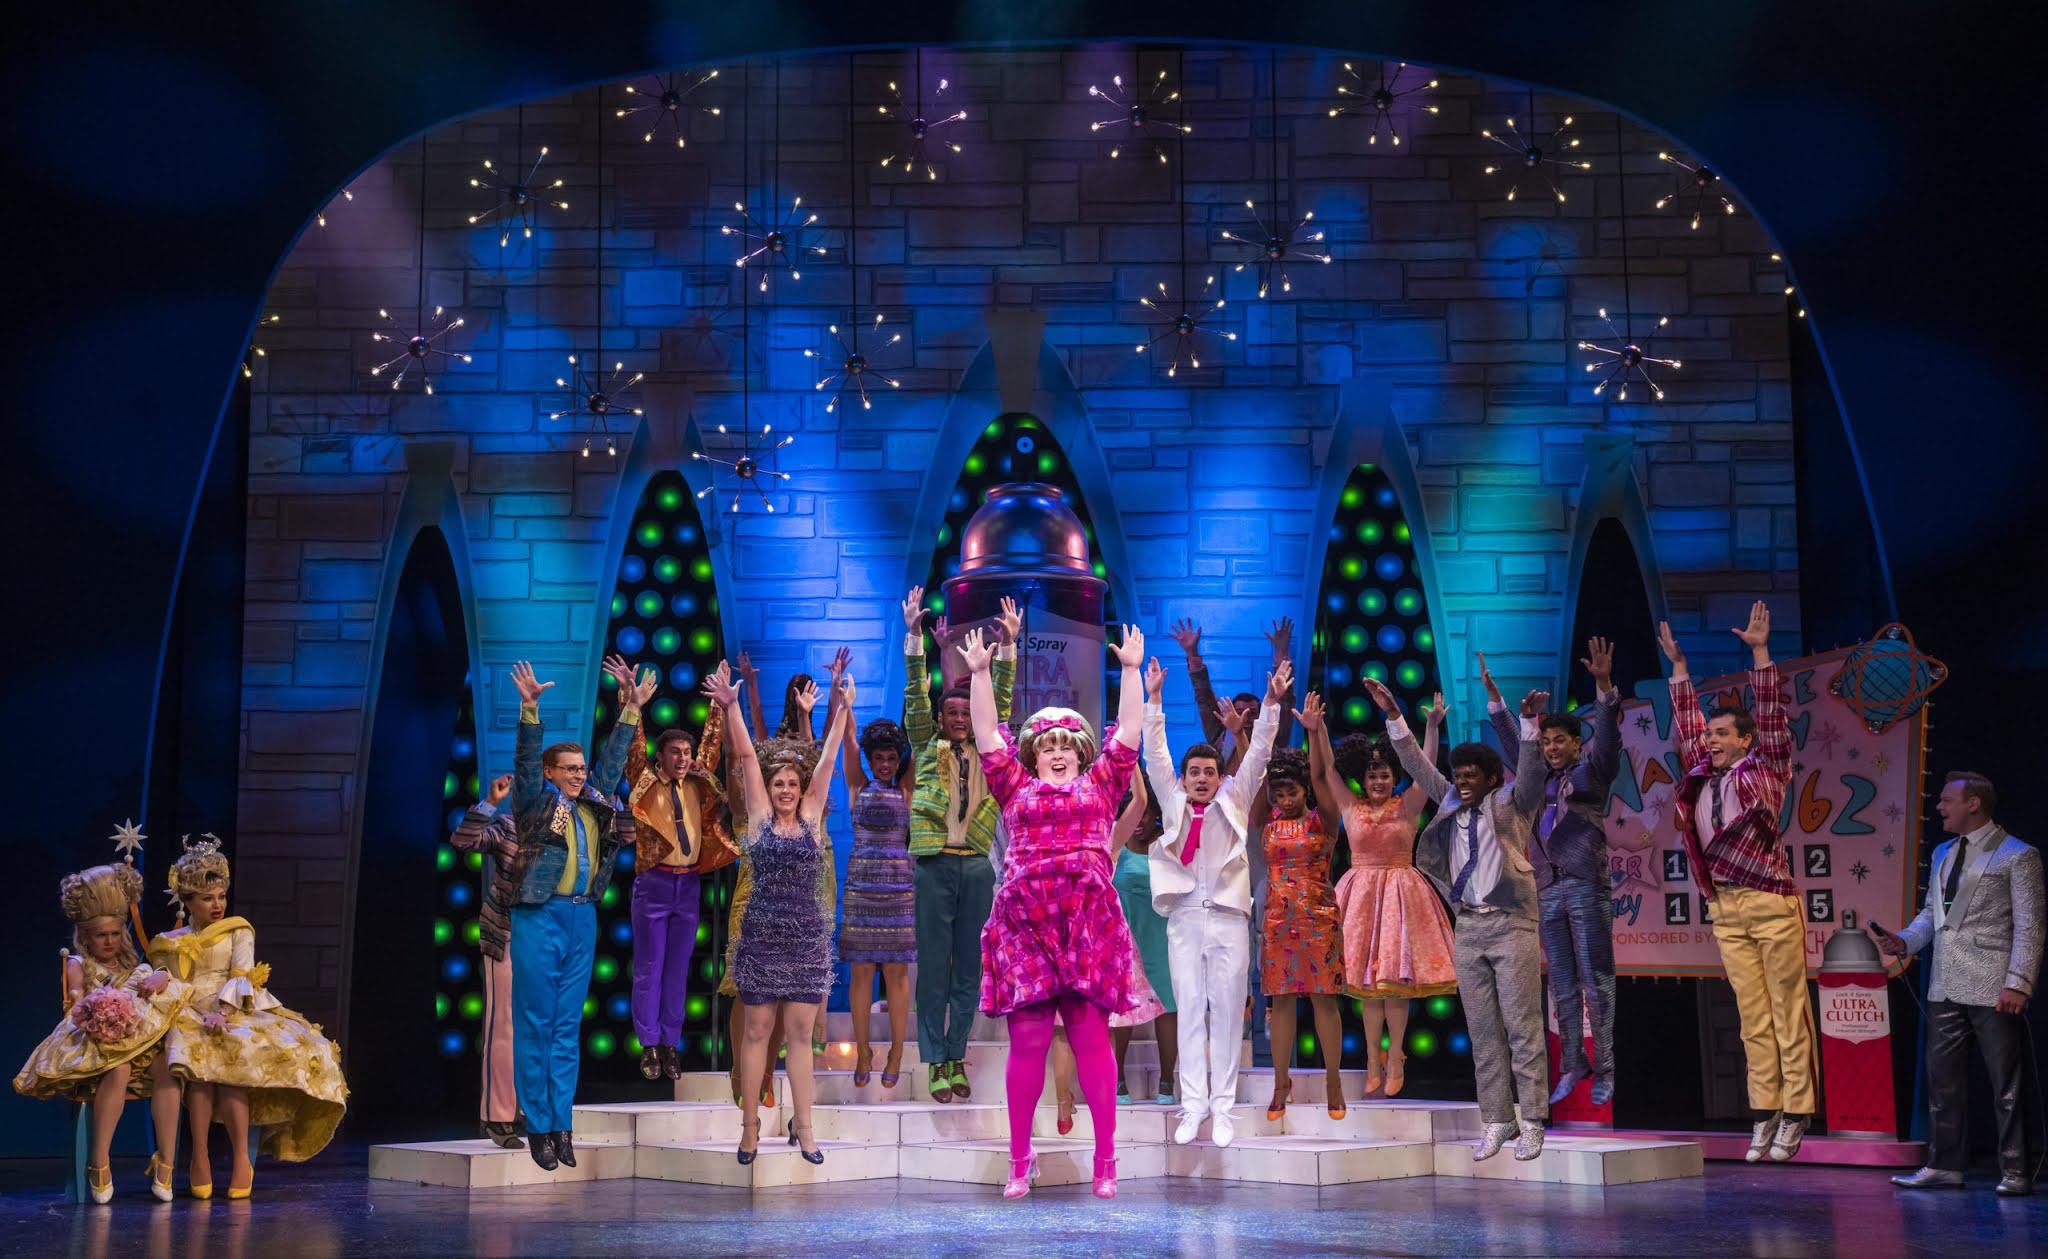 The cast of Hairspray the musical in the West End are performing on stage in 60s brightly coloured costumes, the cast is a mix of black and white performers with the character Tracy Turnblad leading them, wearing a pink dress.